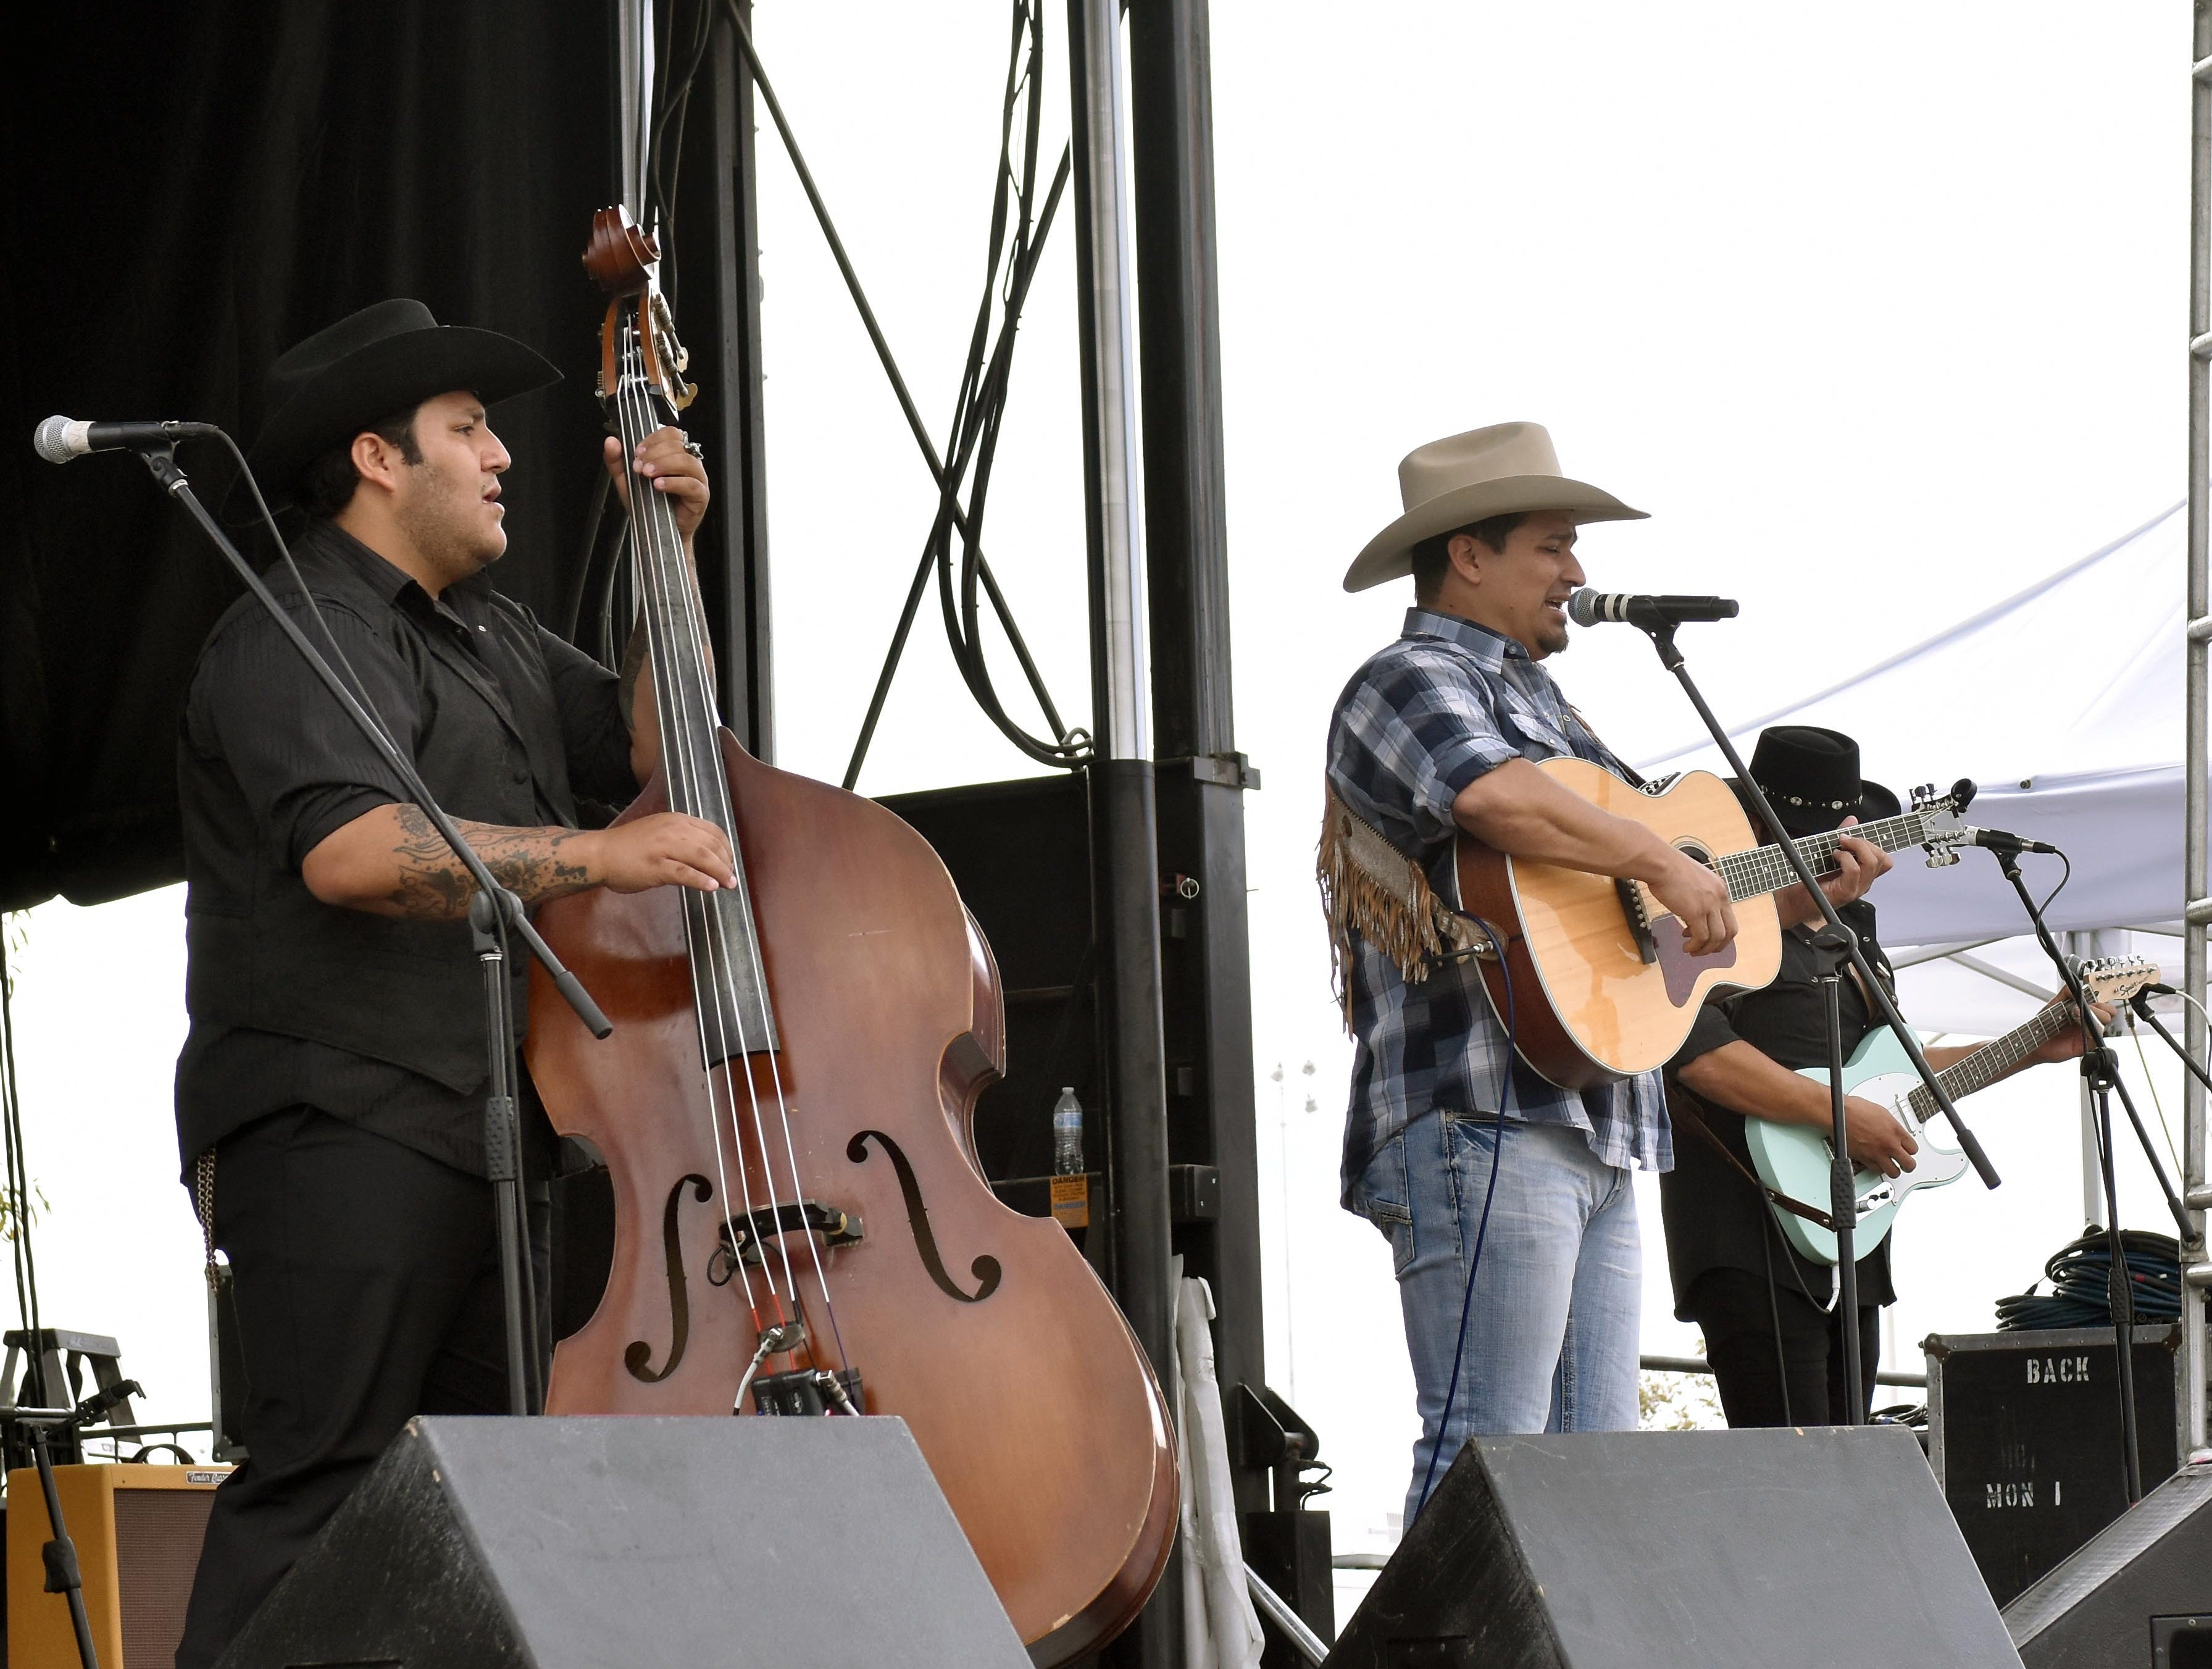 The Abe Mac Band opens up the afternoon's festivities at the Las Cruces Country Music Festival on Sunday, Oct. 21, 2018.